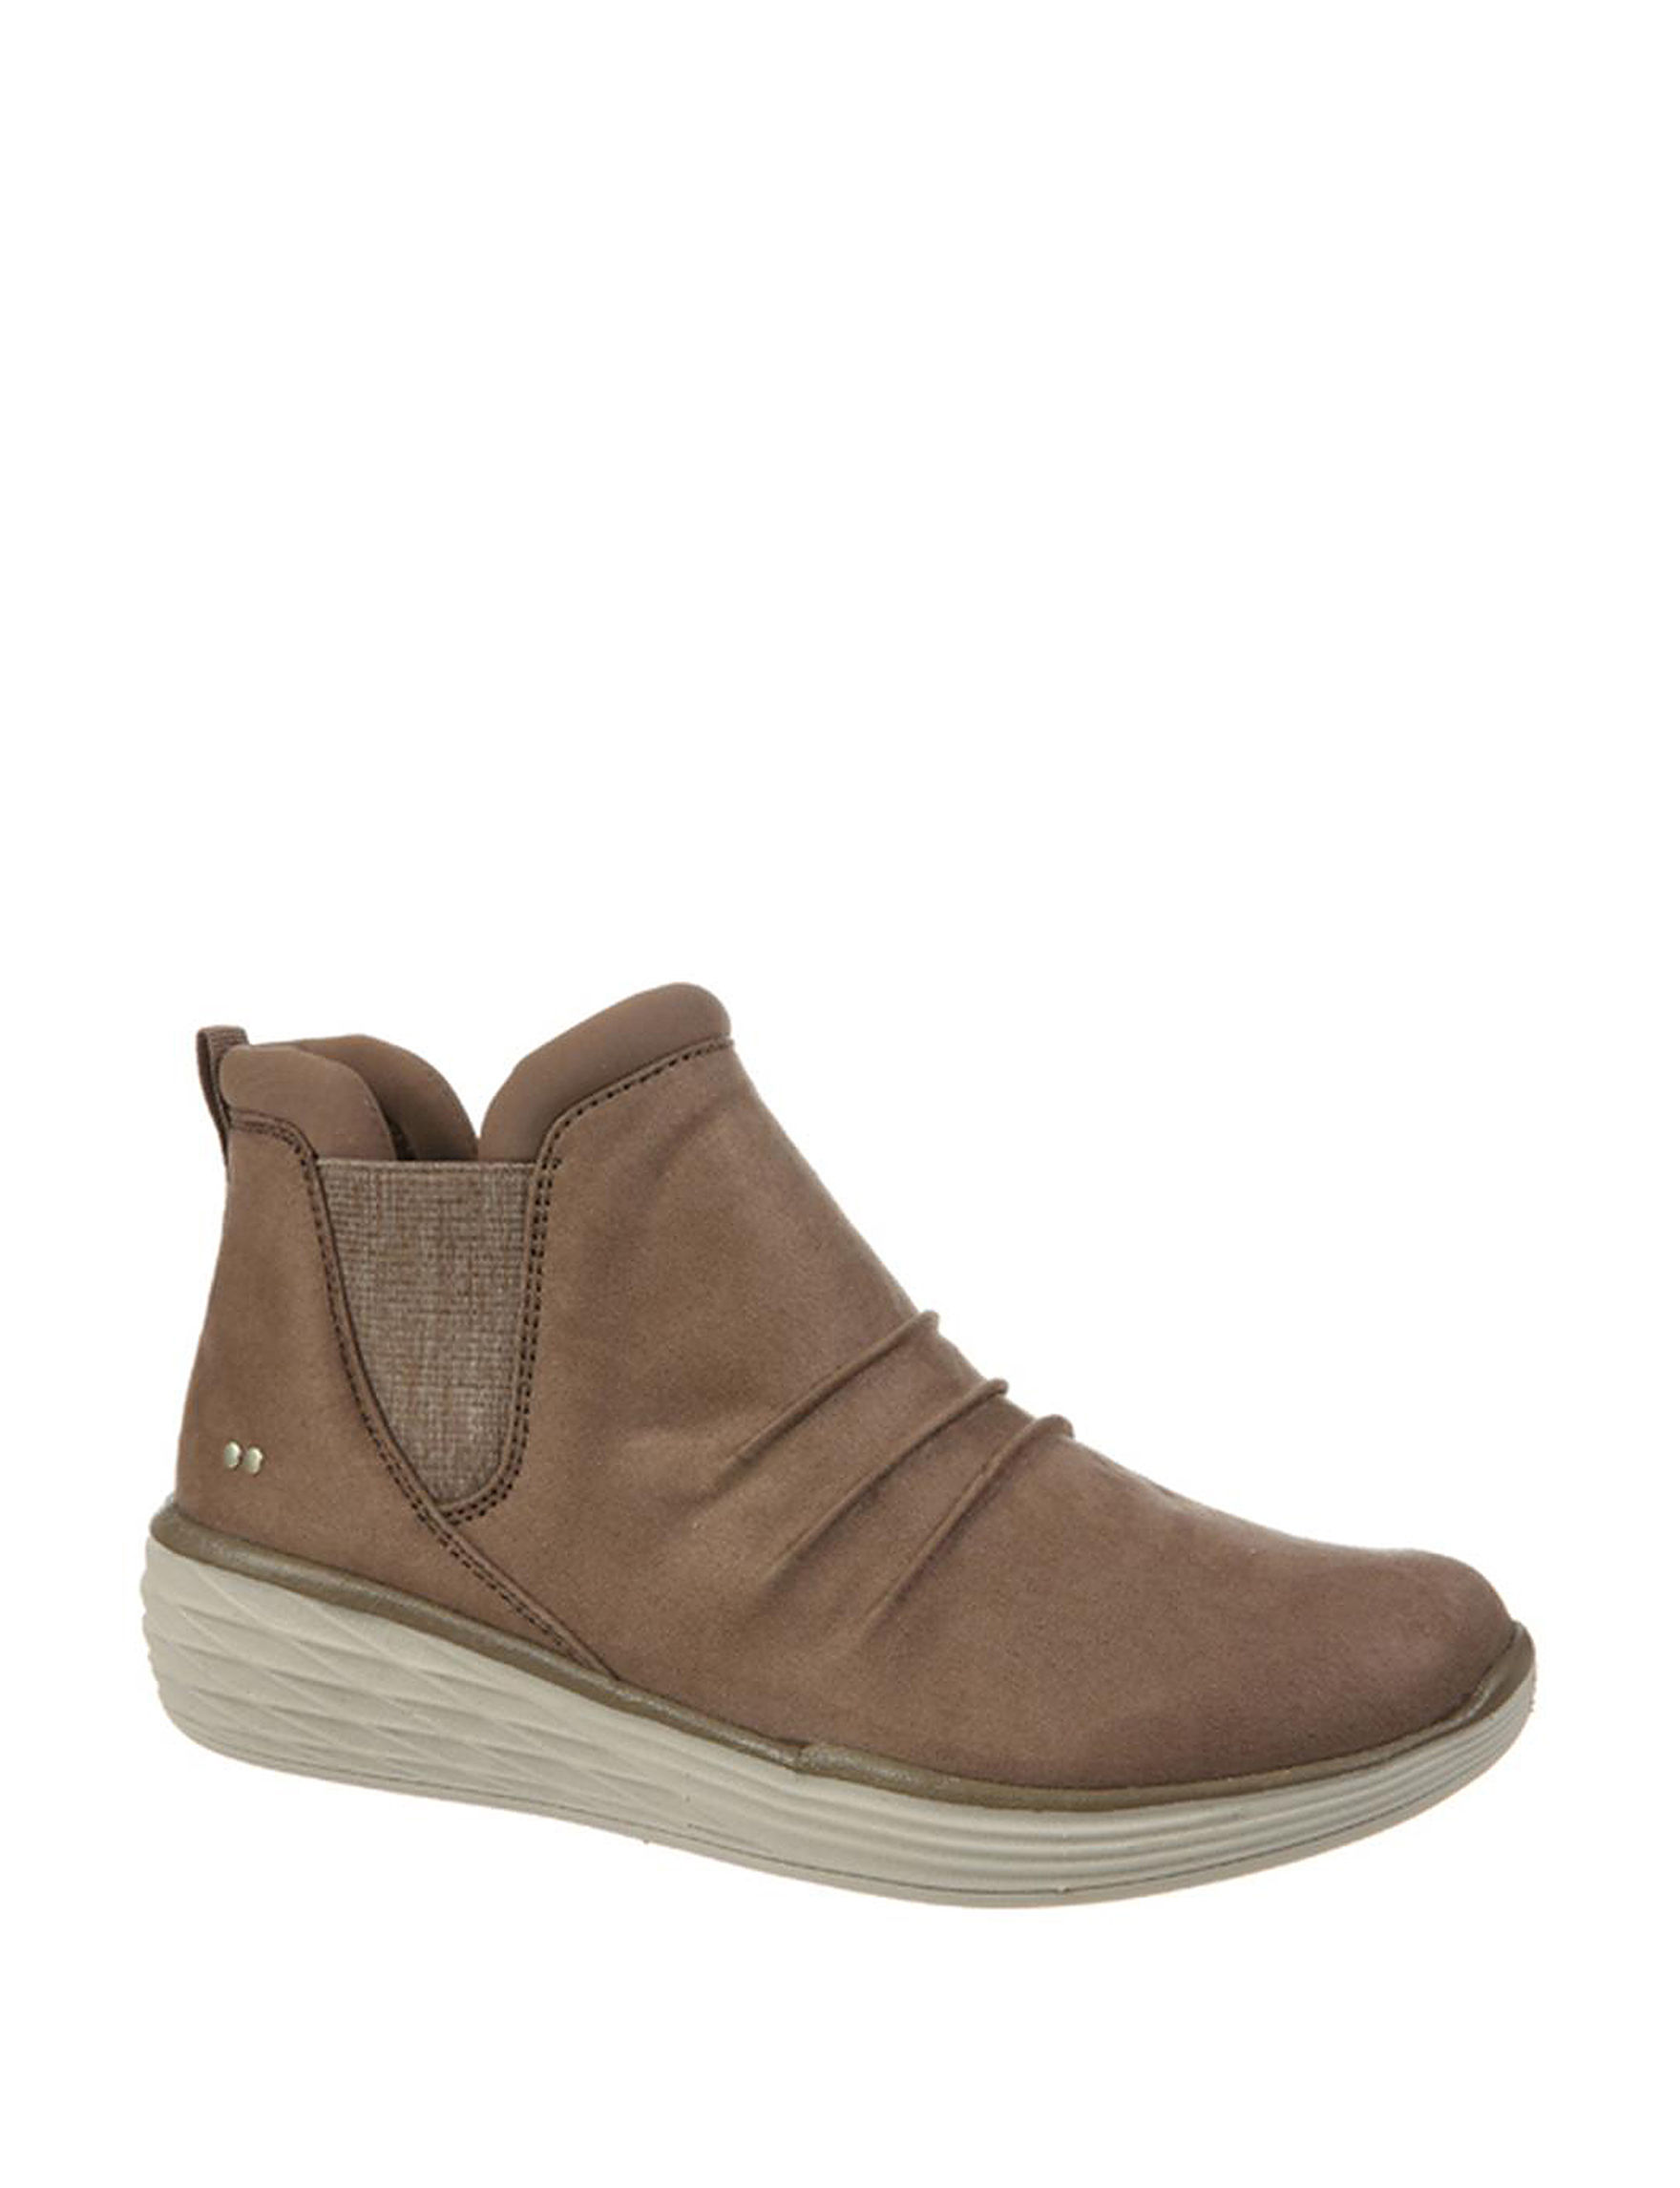 Ryka Taupe Comfort Shoes Wedge Boots Winter Boots